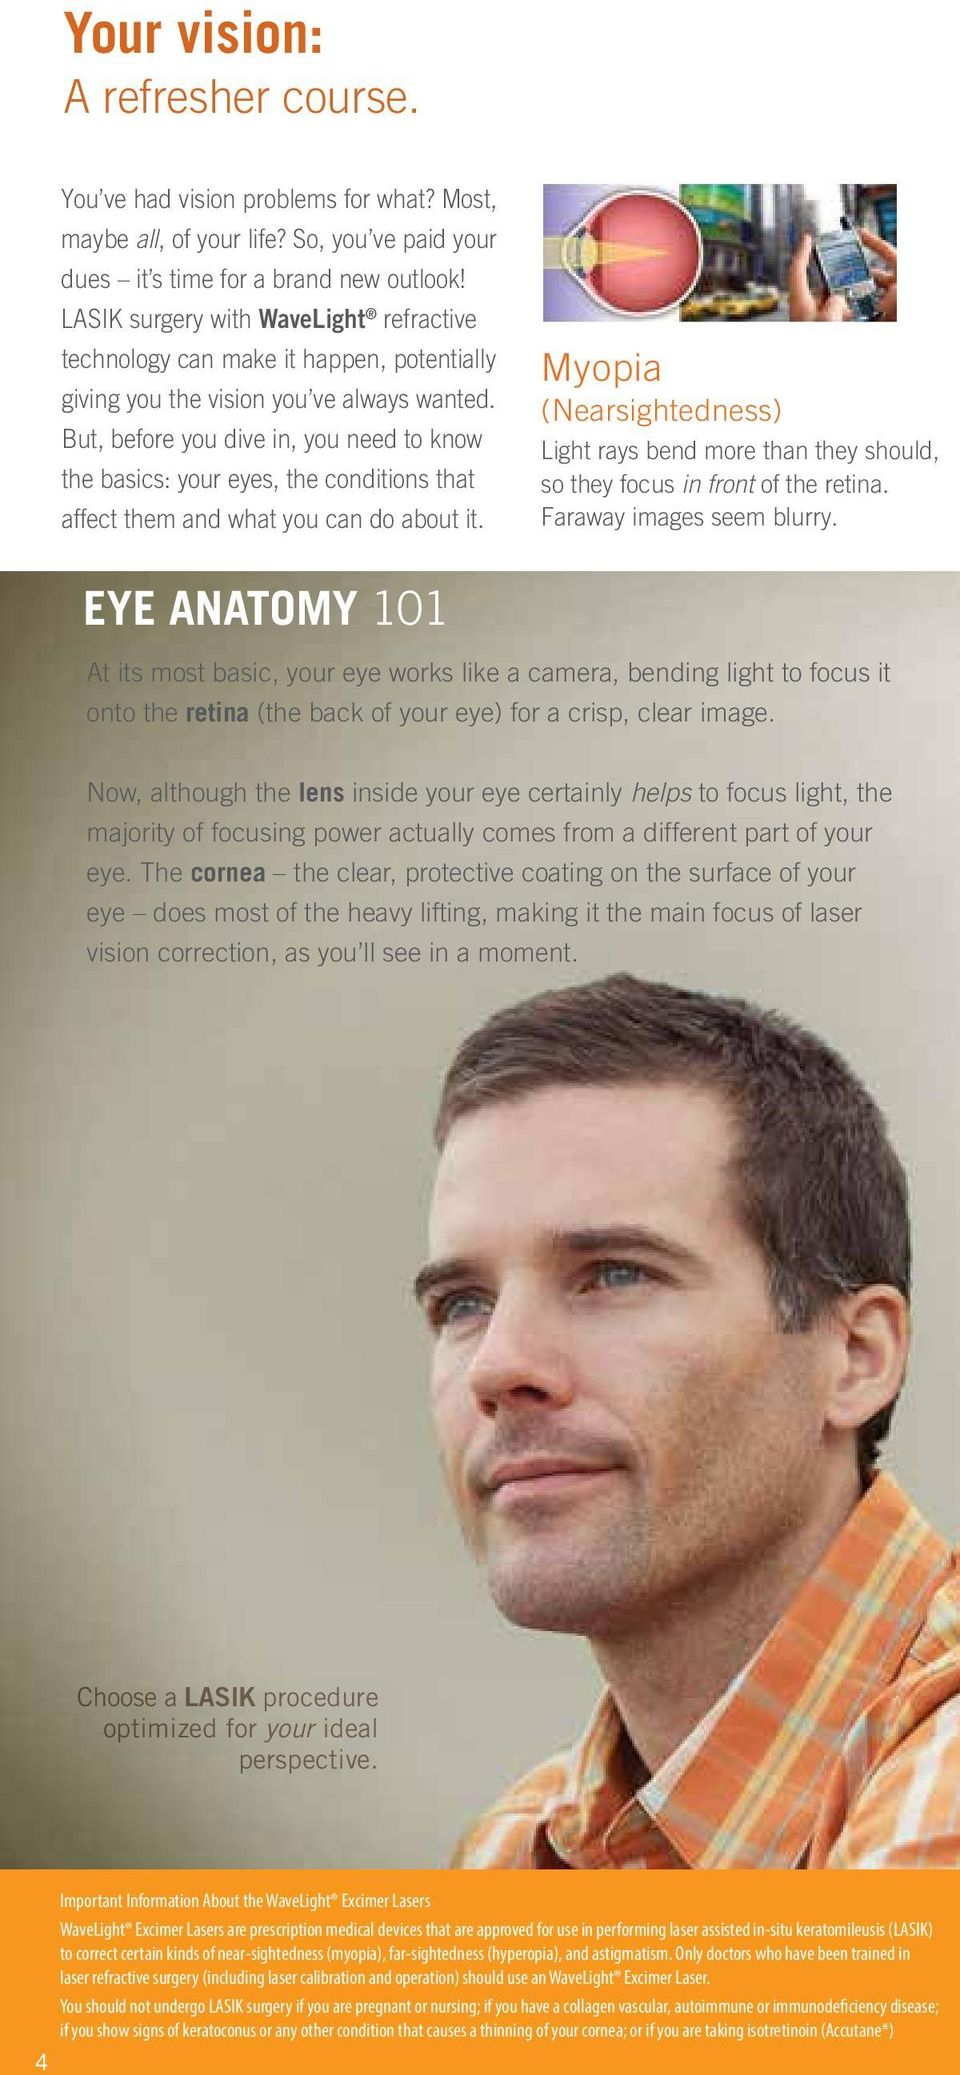 But, before you dive in, you need to know the basics: your eyes, the conditions that affect them and what you can do about it.